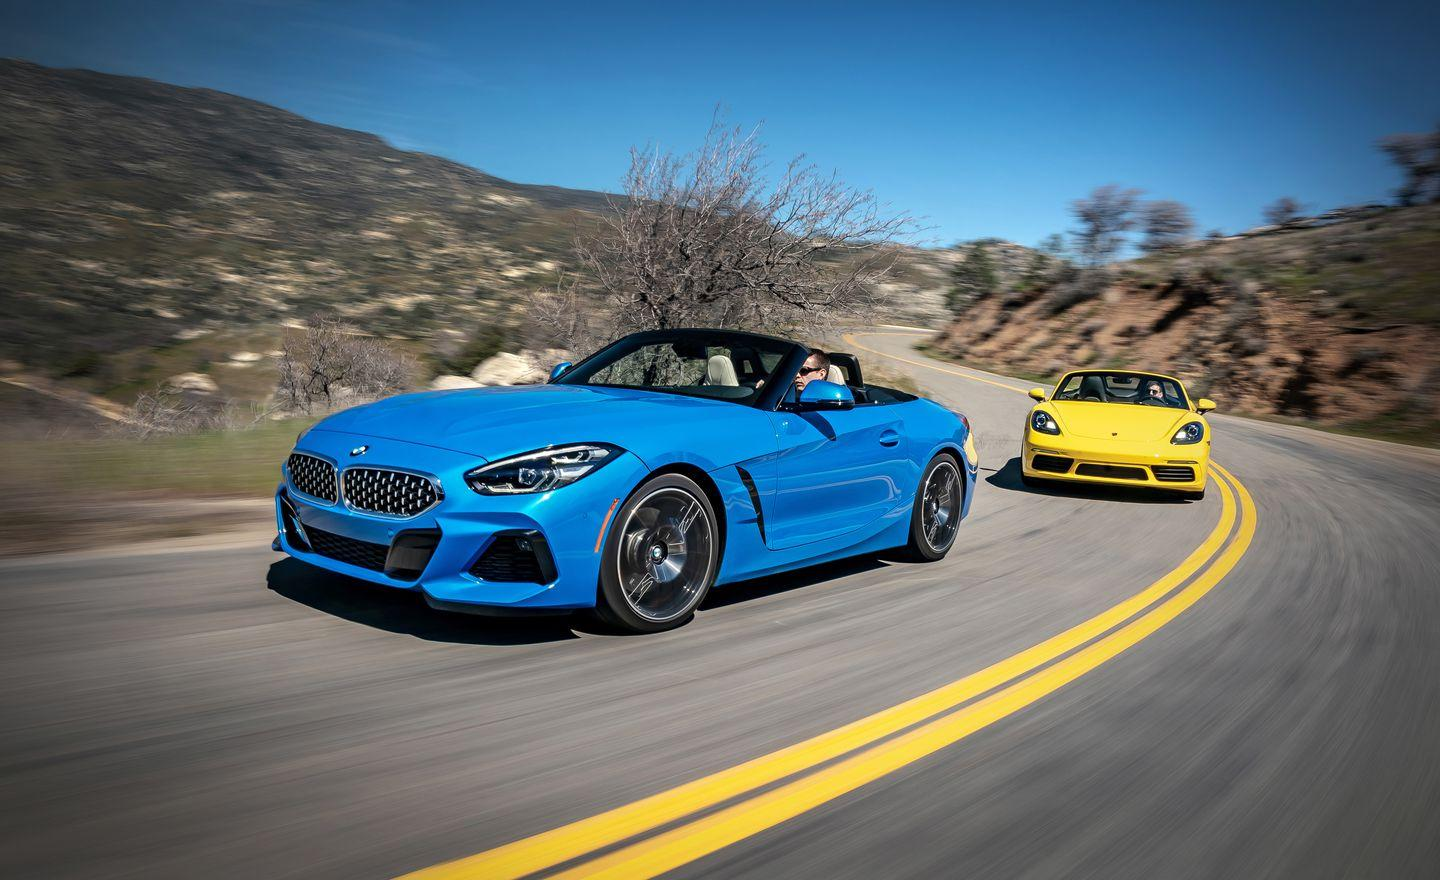 2019 Bmw Z4 Sdrive30i Vs 2019 Porsche 718 Boxster Photos